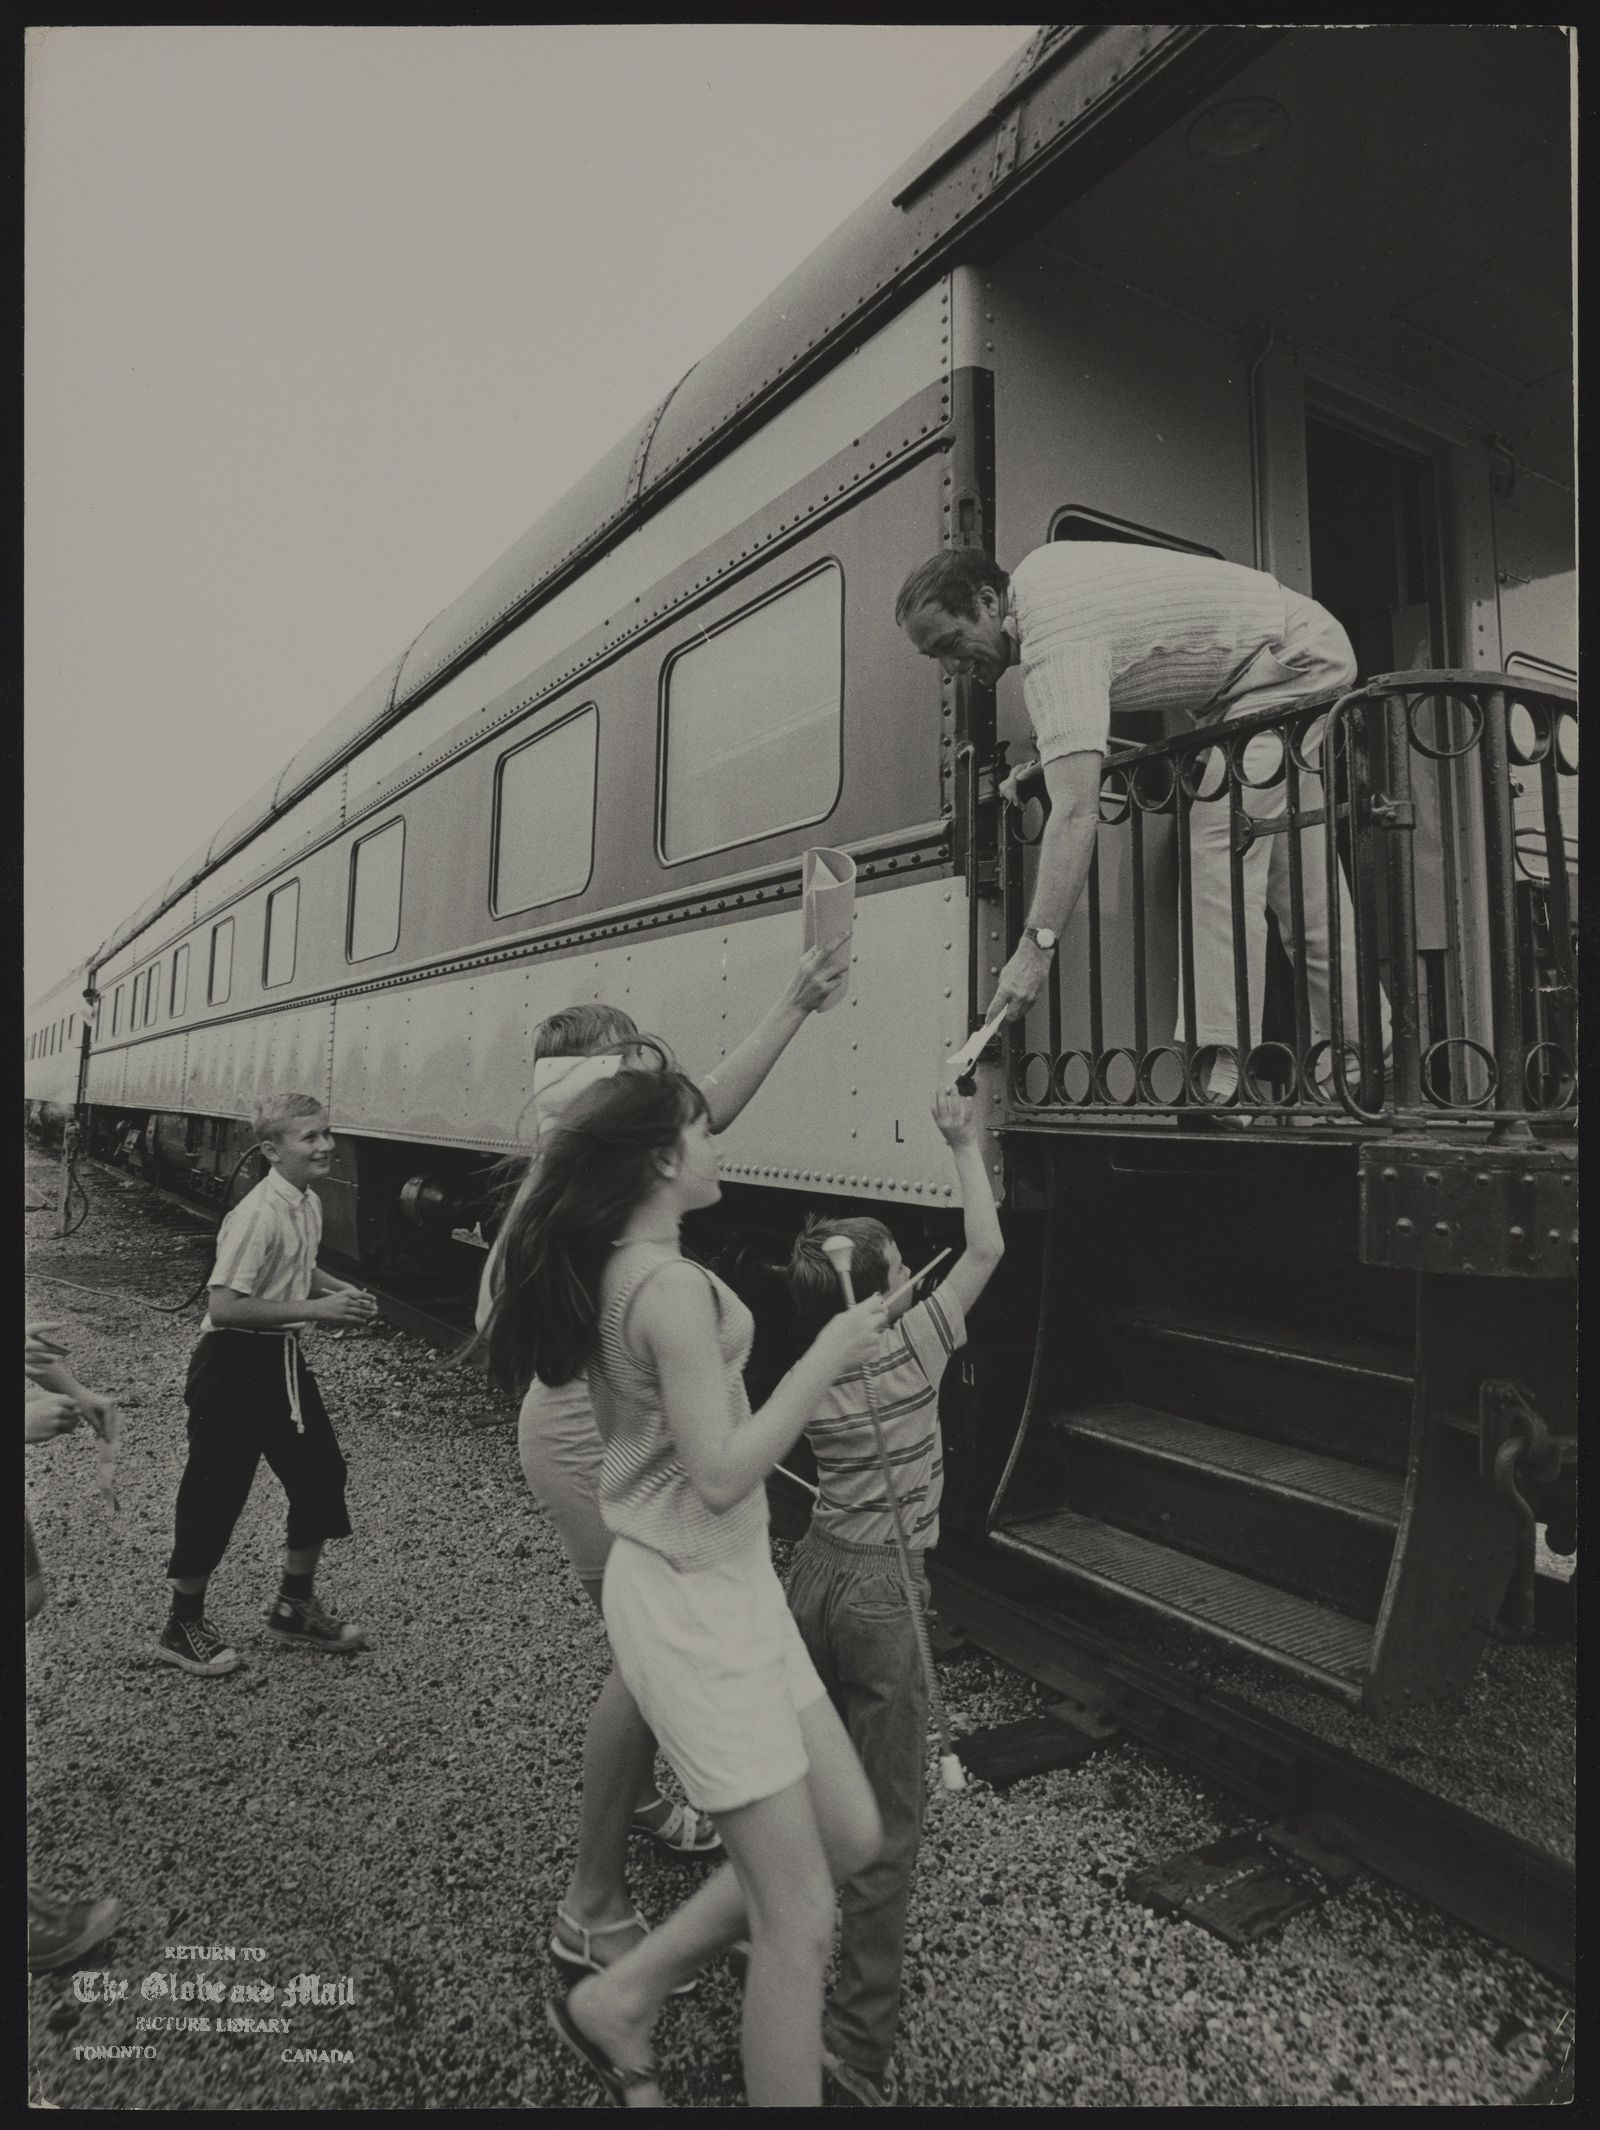 Pierre Elliott TRUDEAU Quebec. Politician (Misc) [Wellwishers run up to greet Prime Minister Trudeau at rear platform of his railway car in Stratford yesterday.]